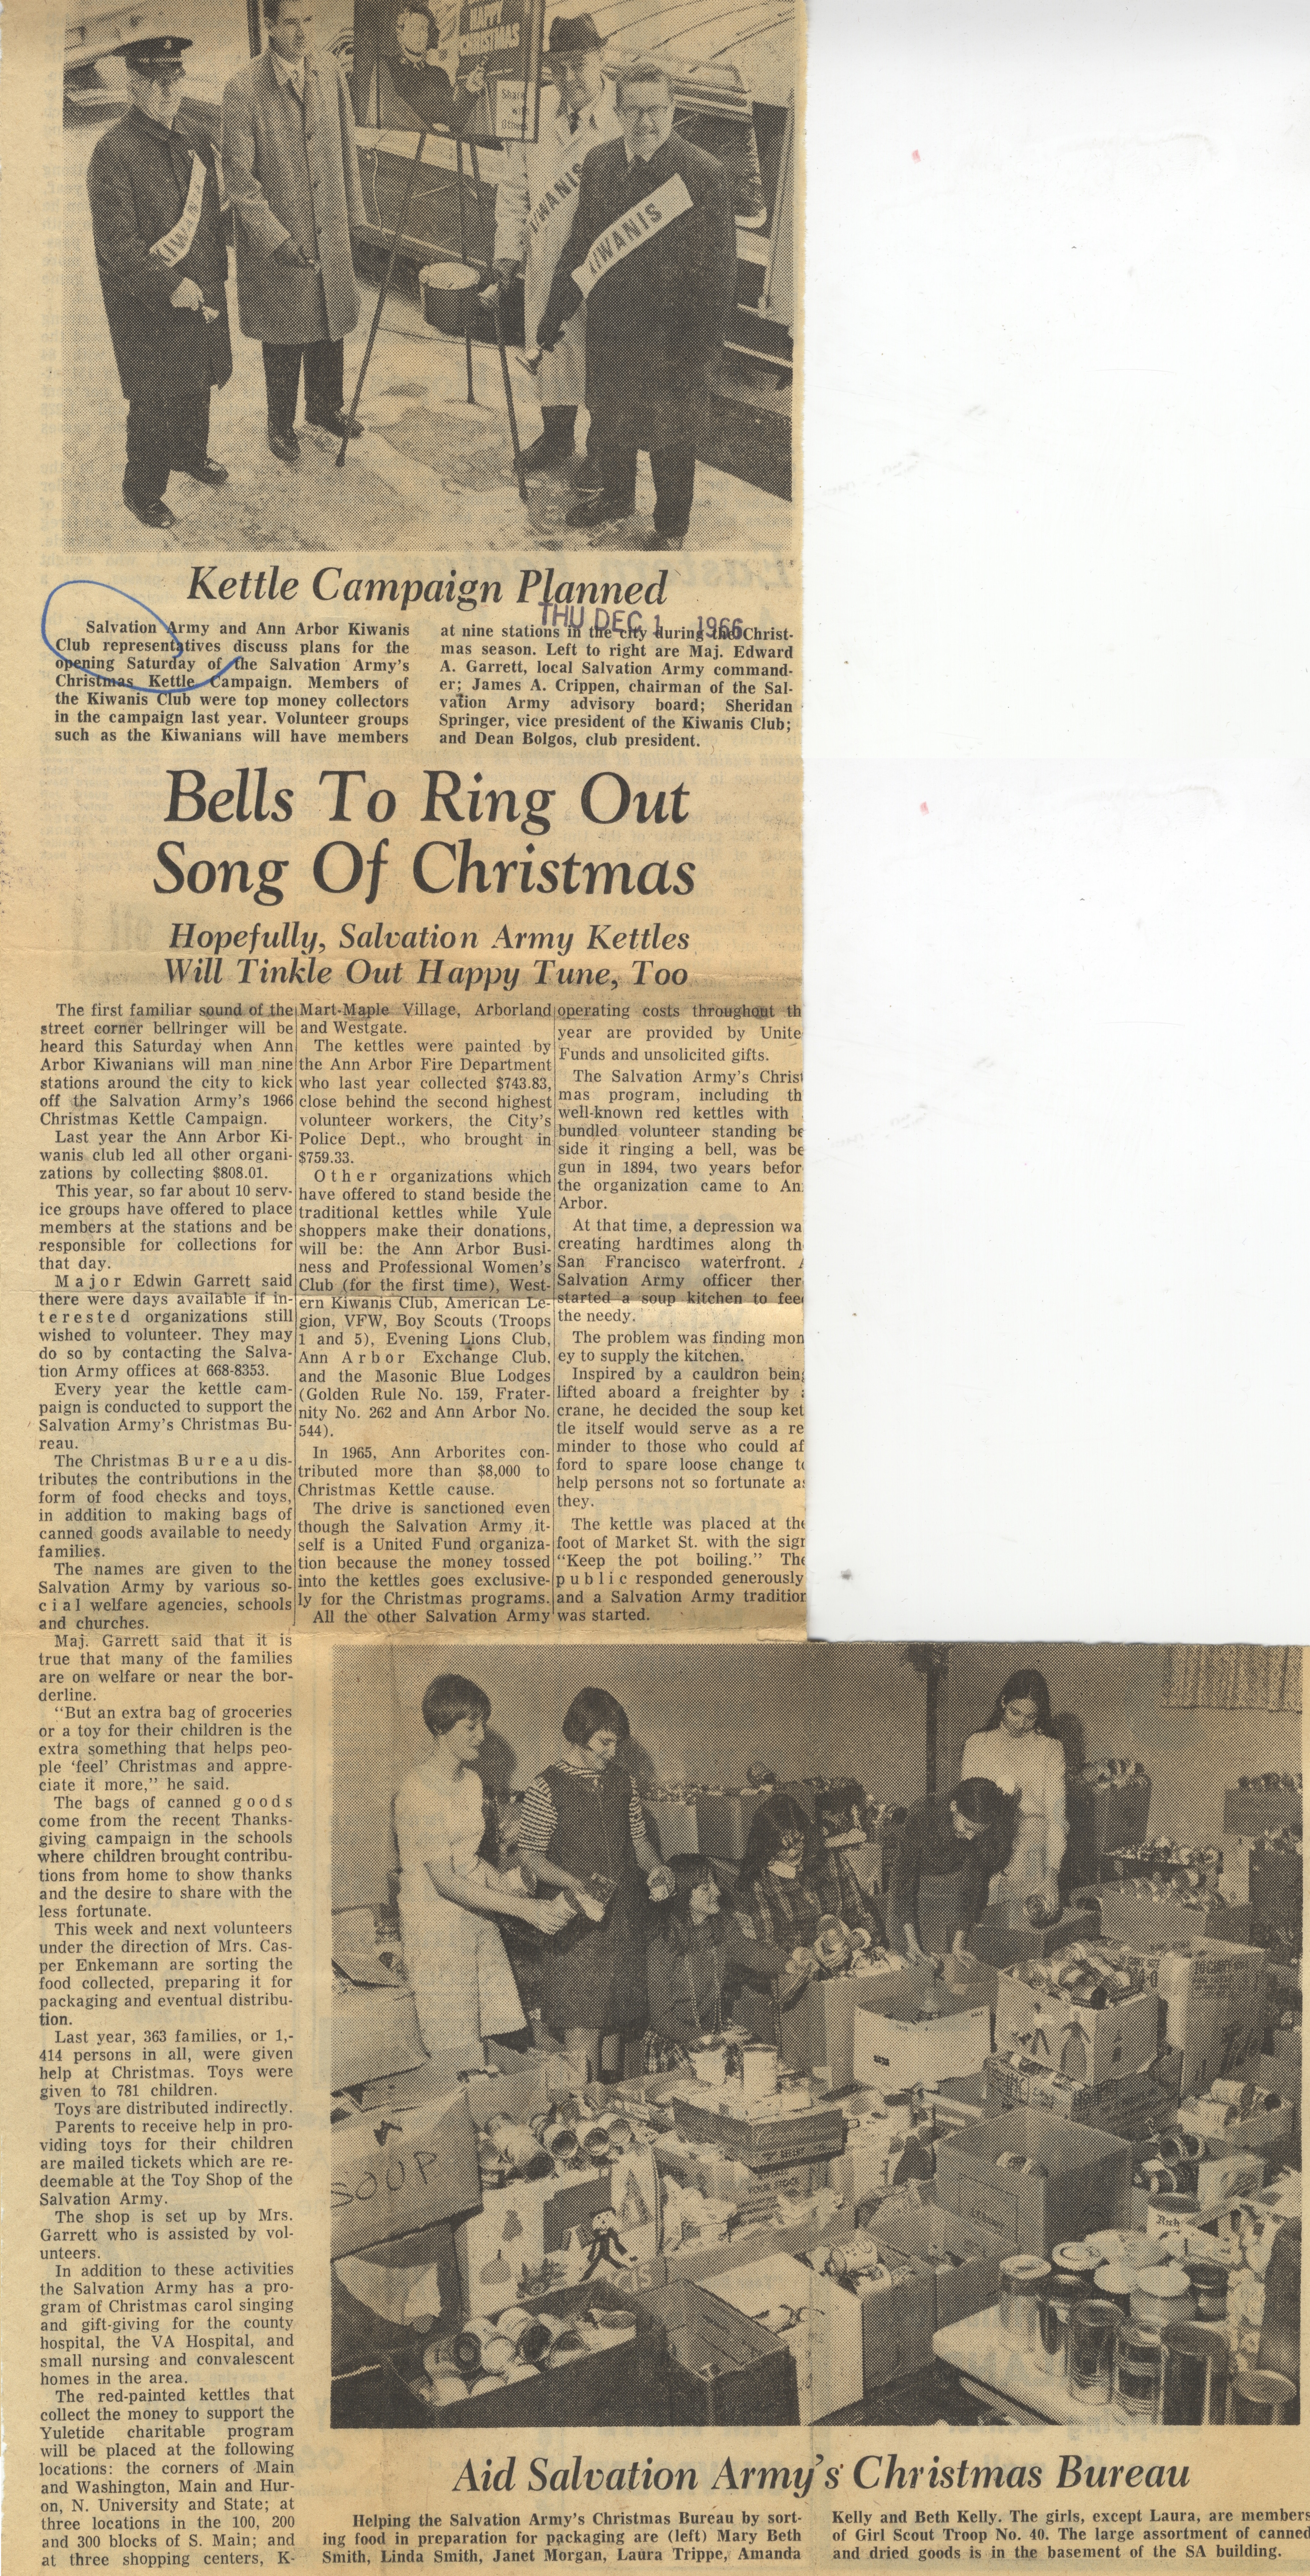 Bells To Ring Out Song Of Christmas image